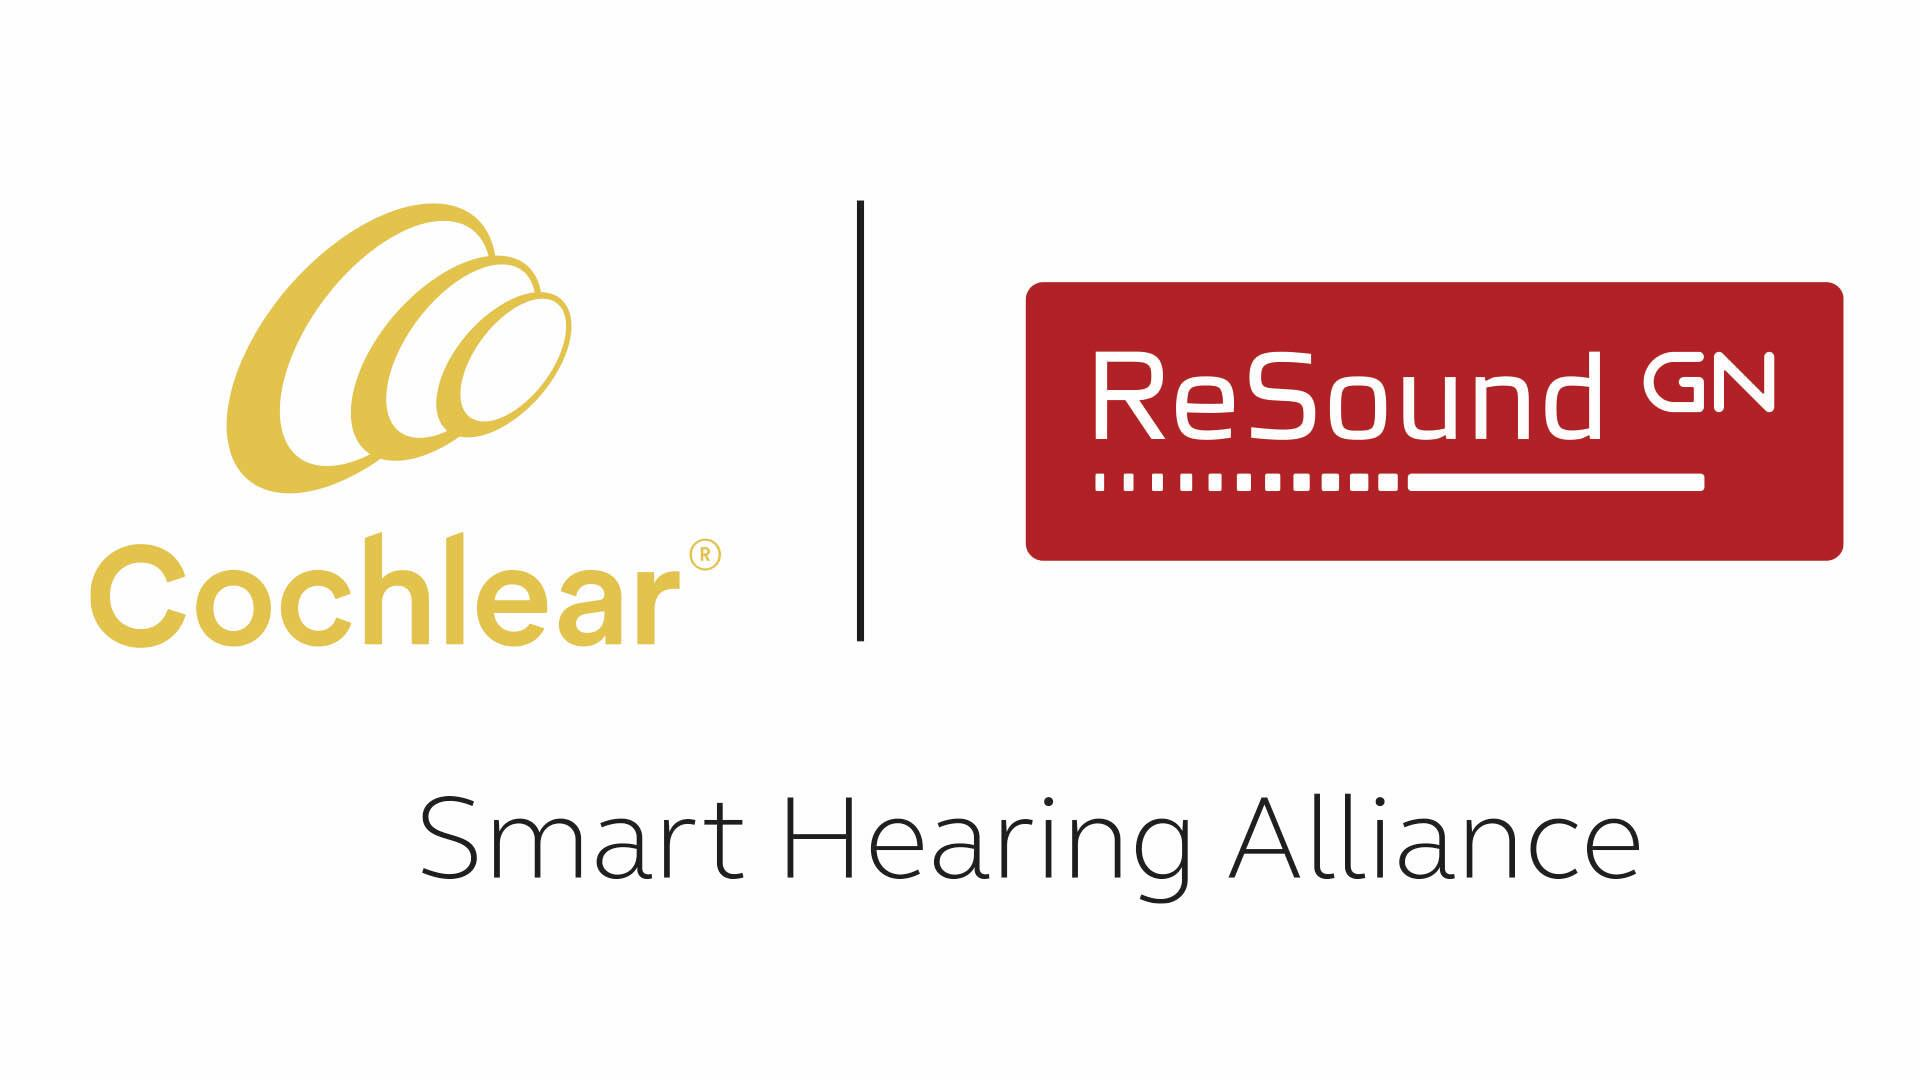 Cochlear and ReSound logos